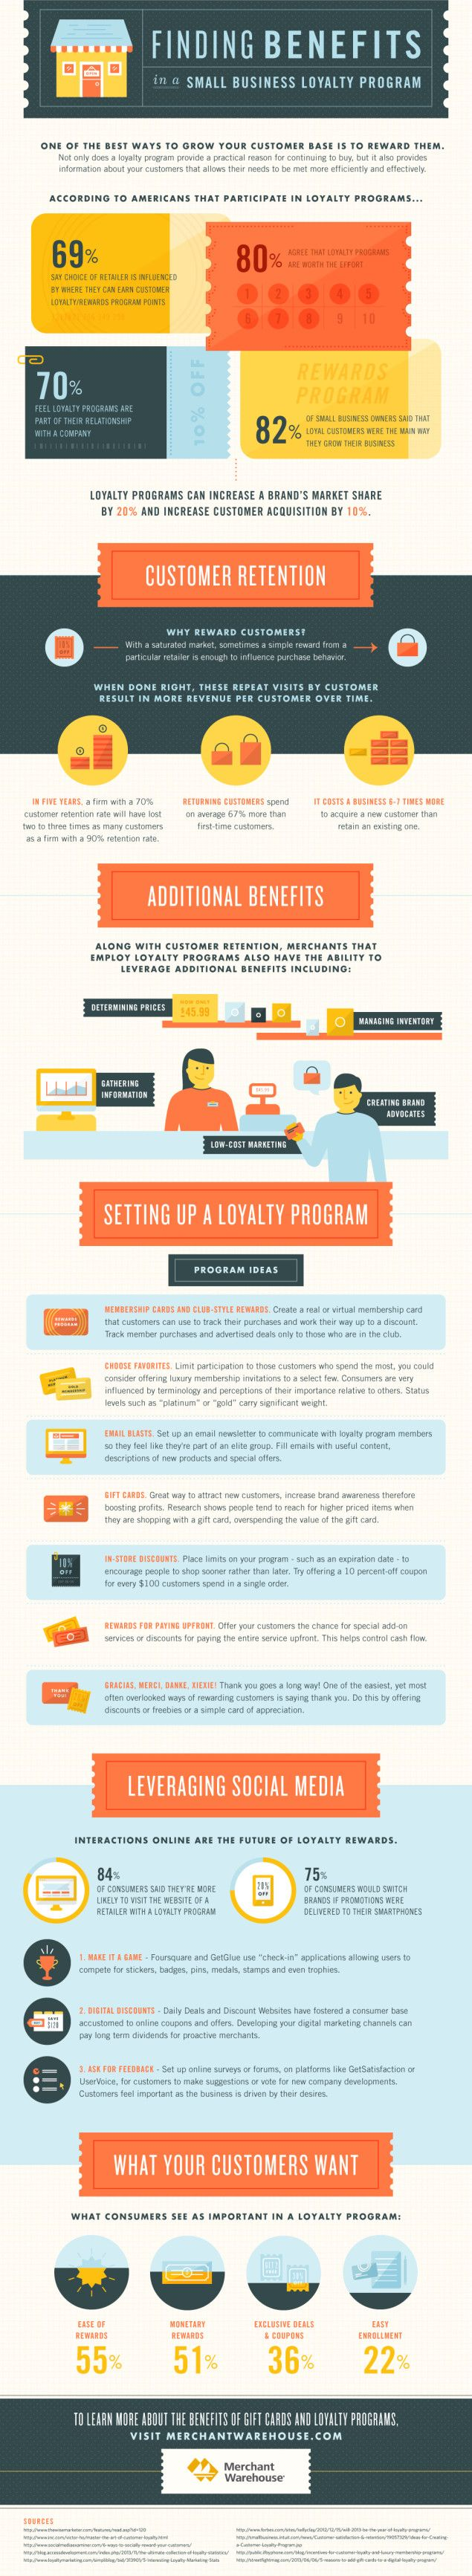 45 best loyalty cards images on Pinterest | Loyalty cards ...